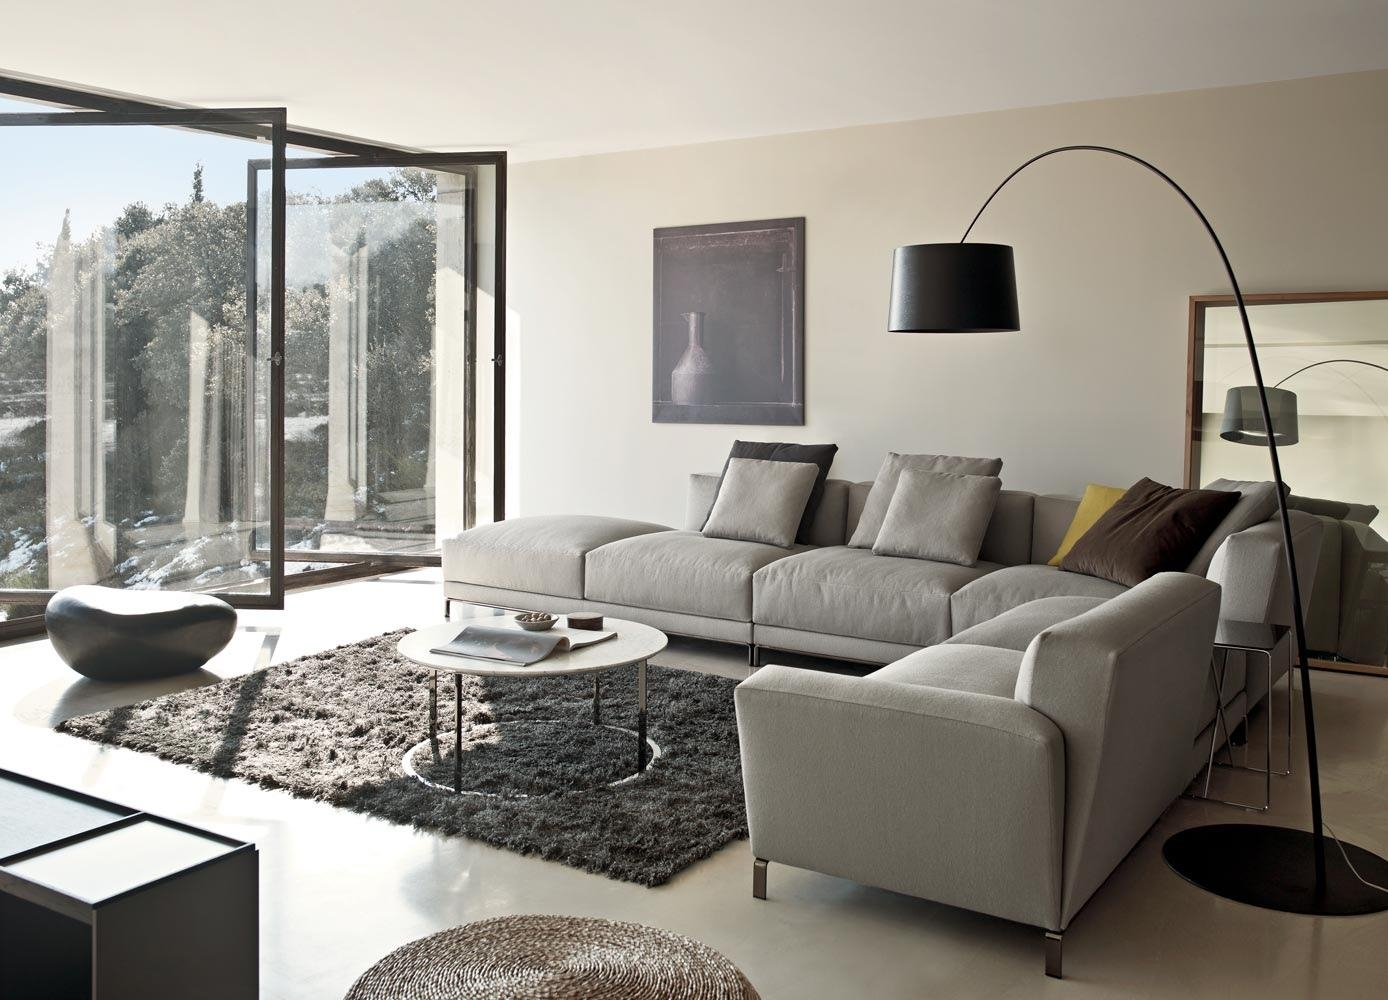 Sectional Living Room Design | Latest Gallery Photo In Decorating With A Sectional Sofa (Image 14 of 15)